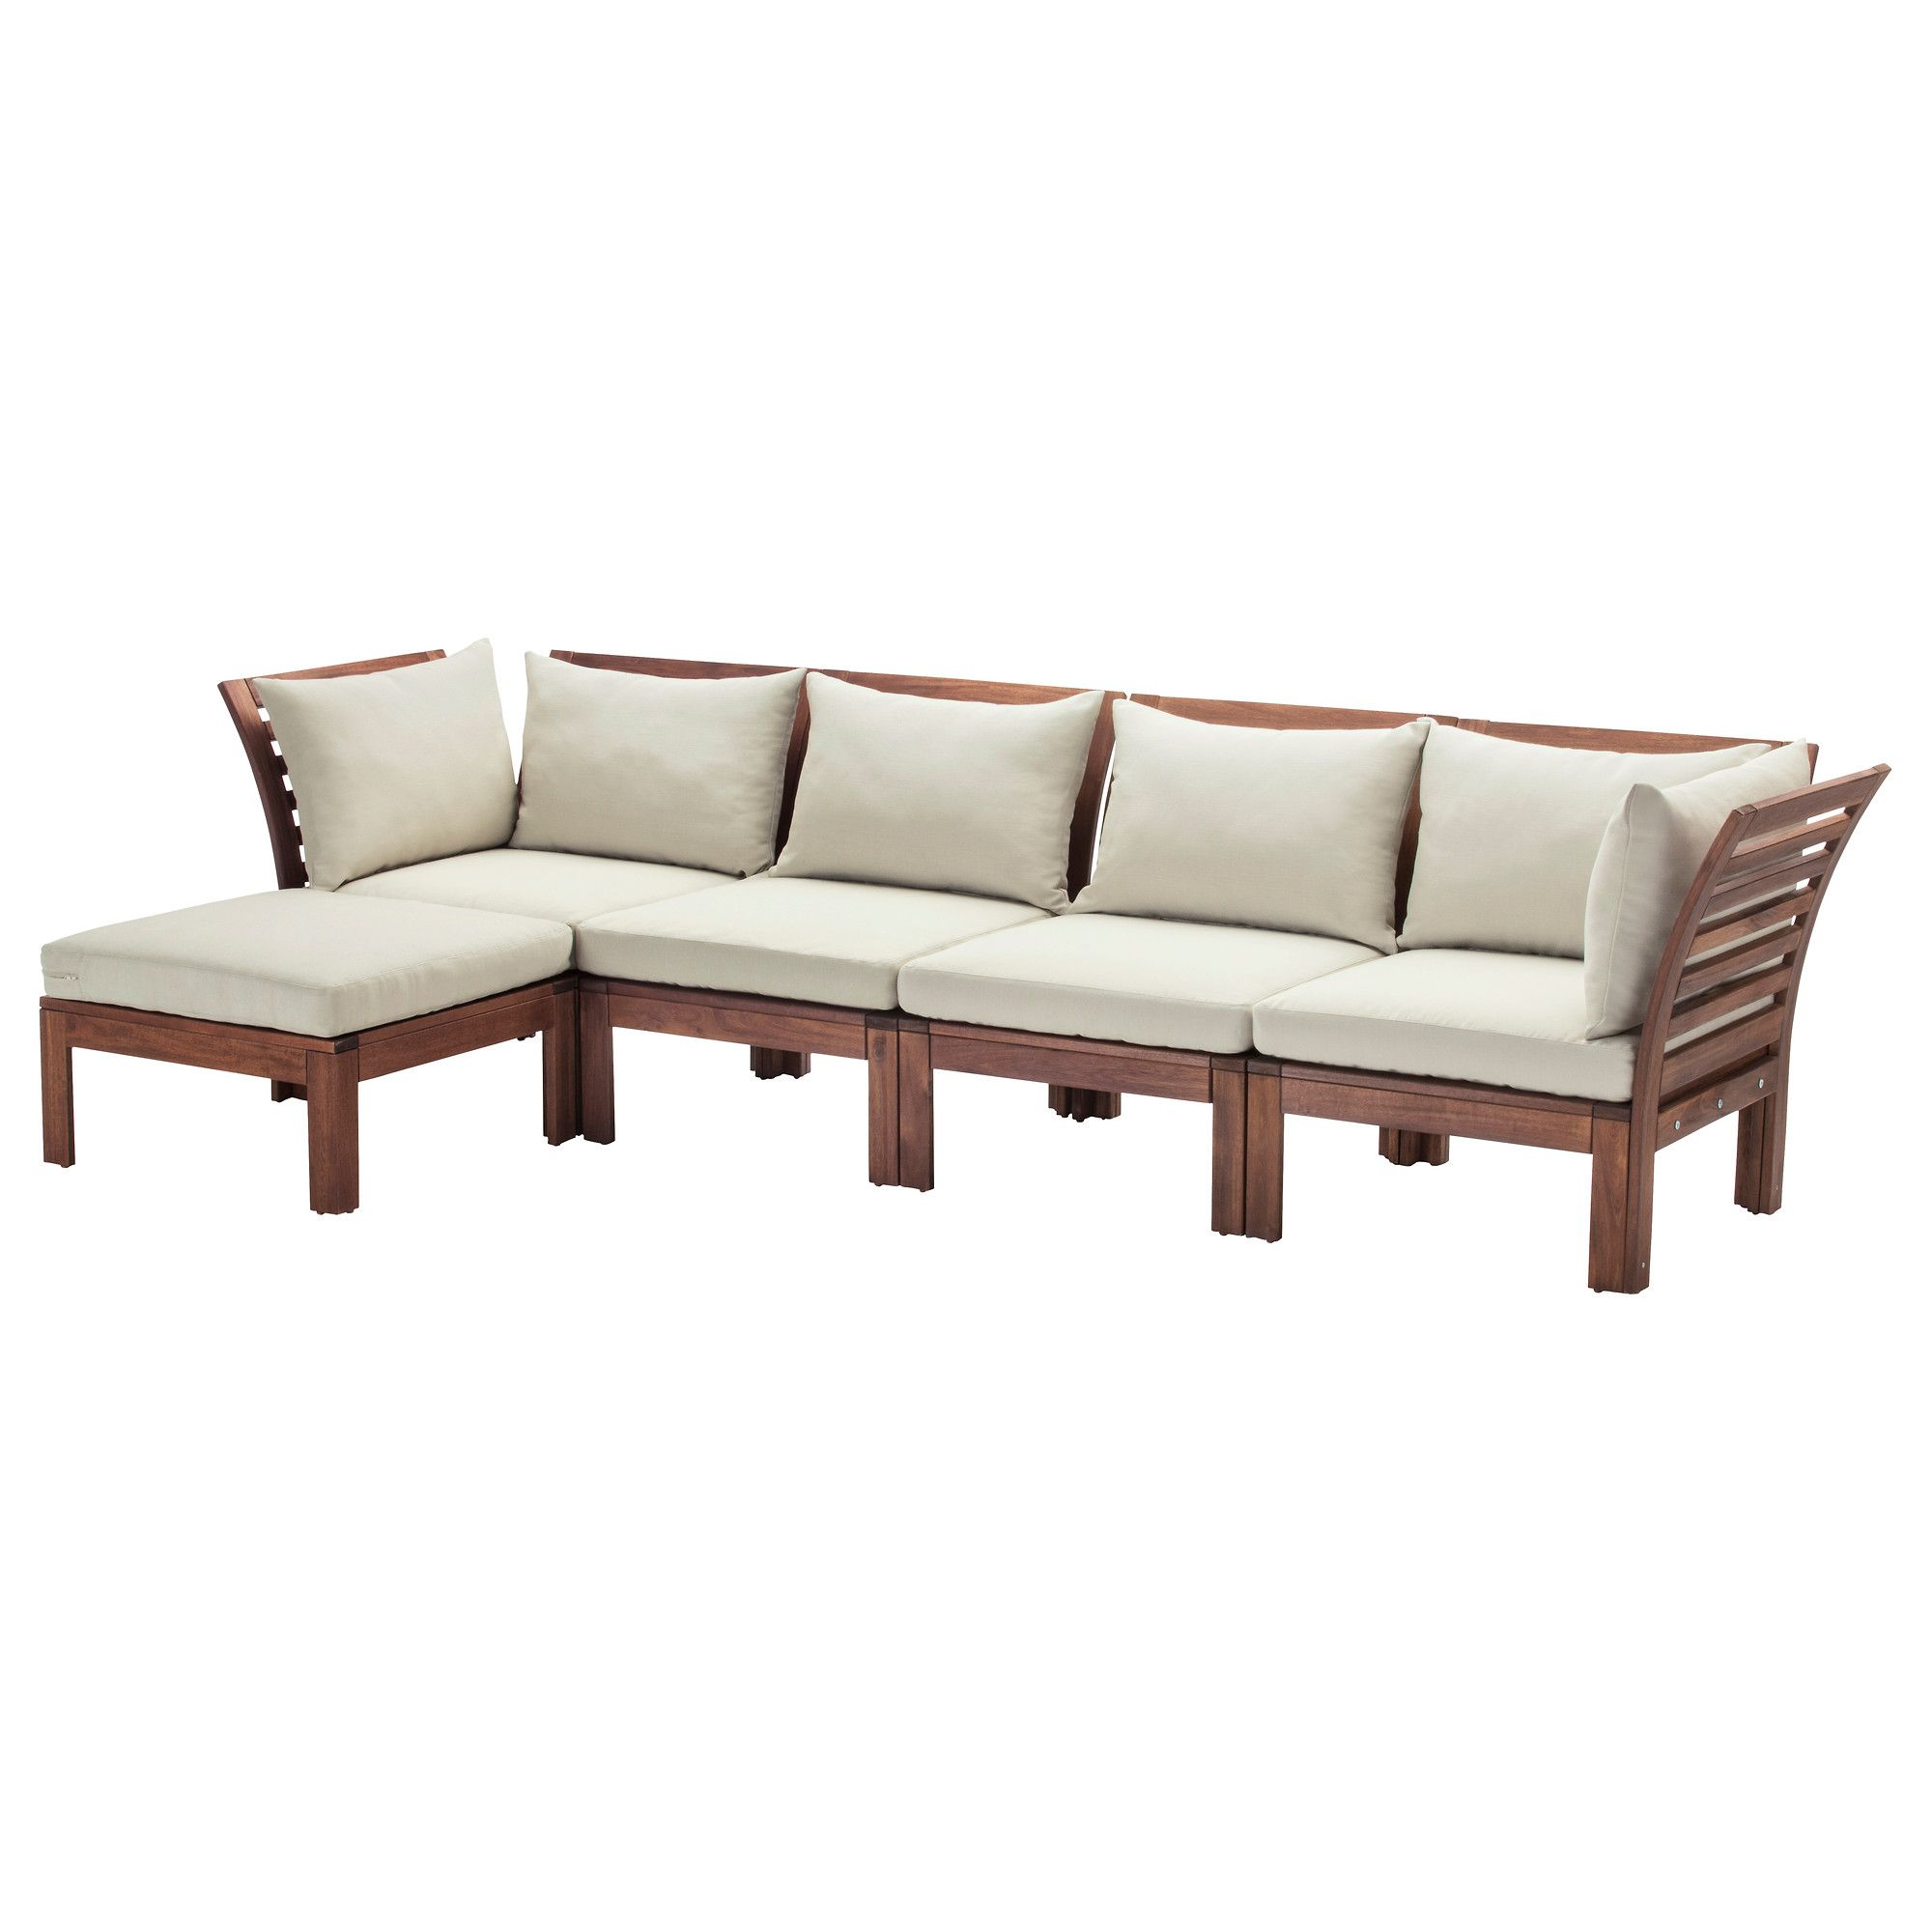 Gartensofa Ikea ÄpplarÖ 4 Seat Modular Sofa Outdoor With Footstool Brown Stained